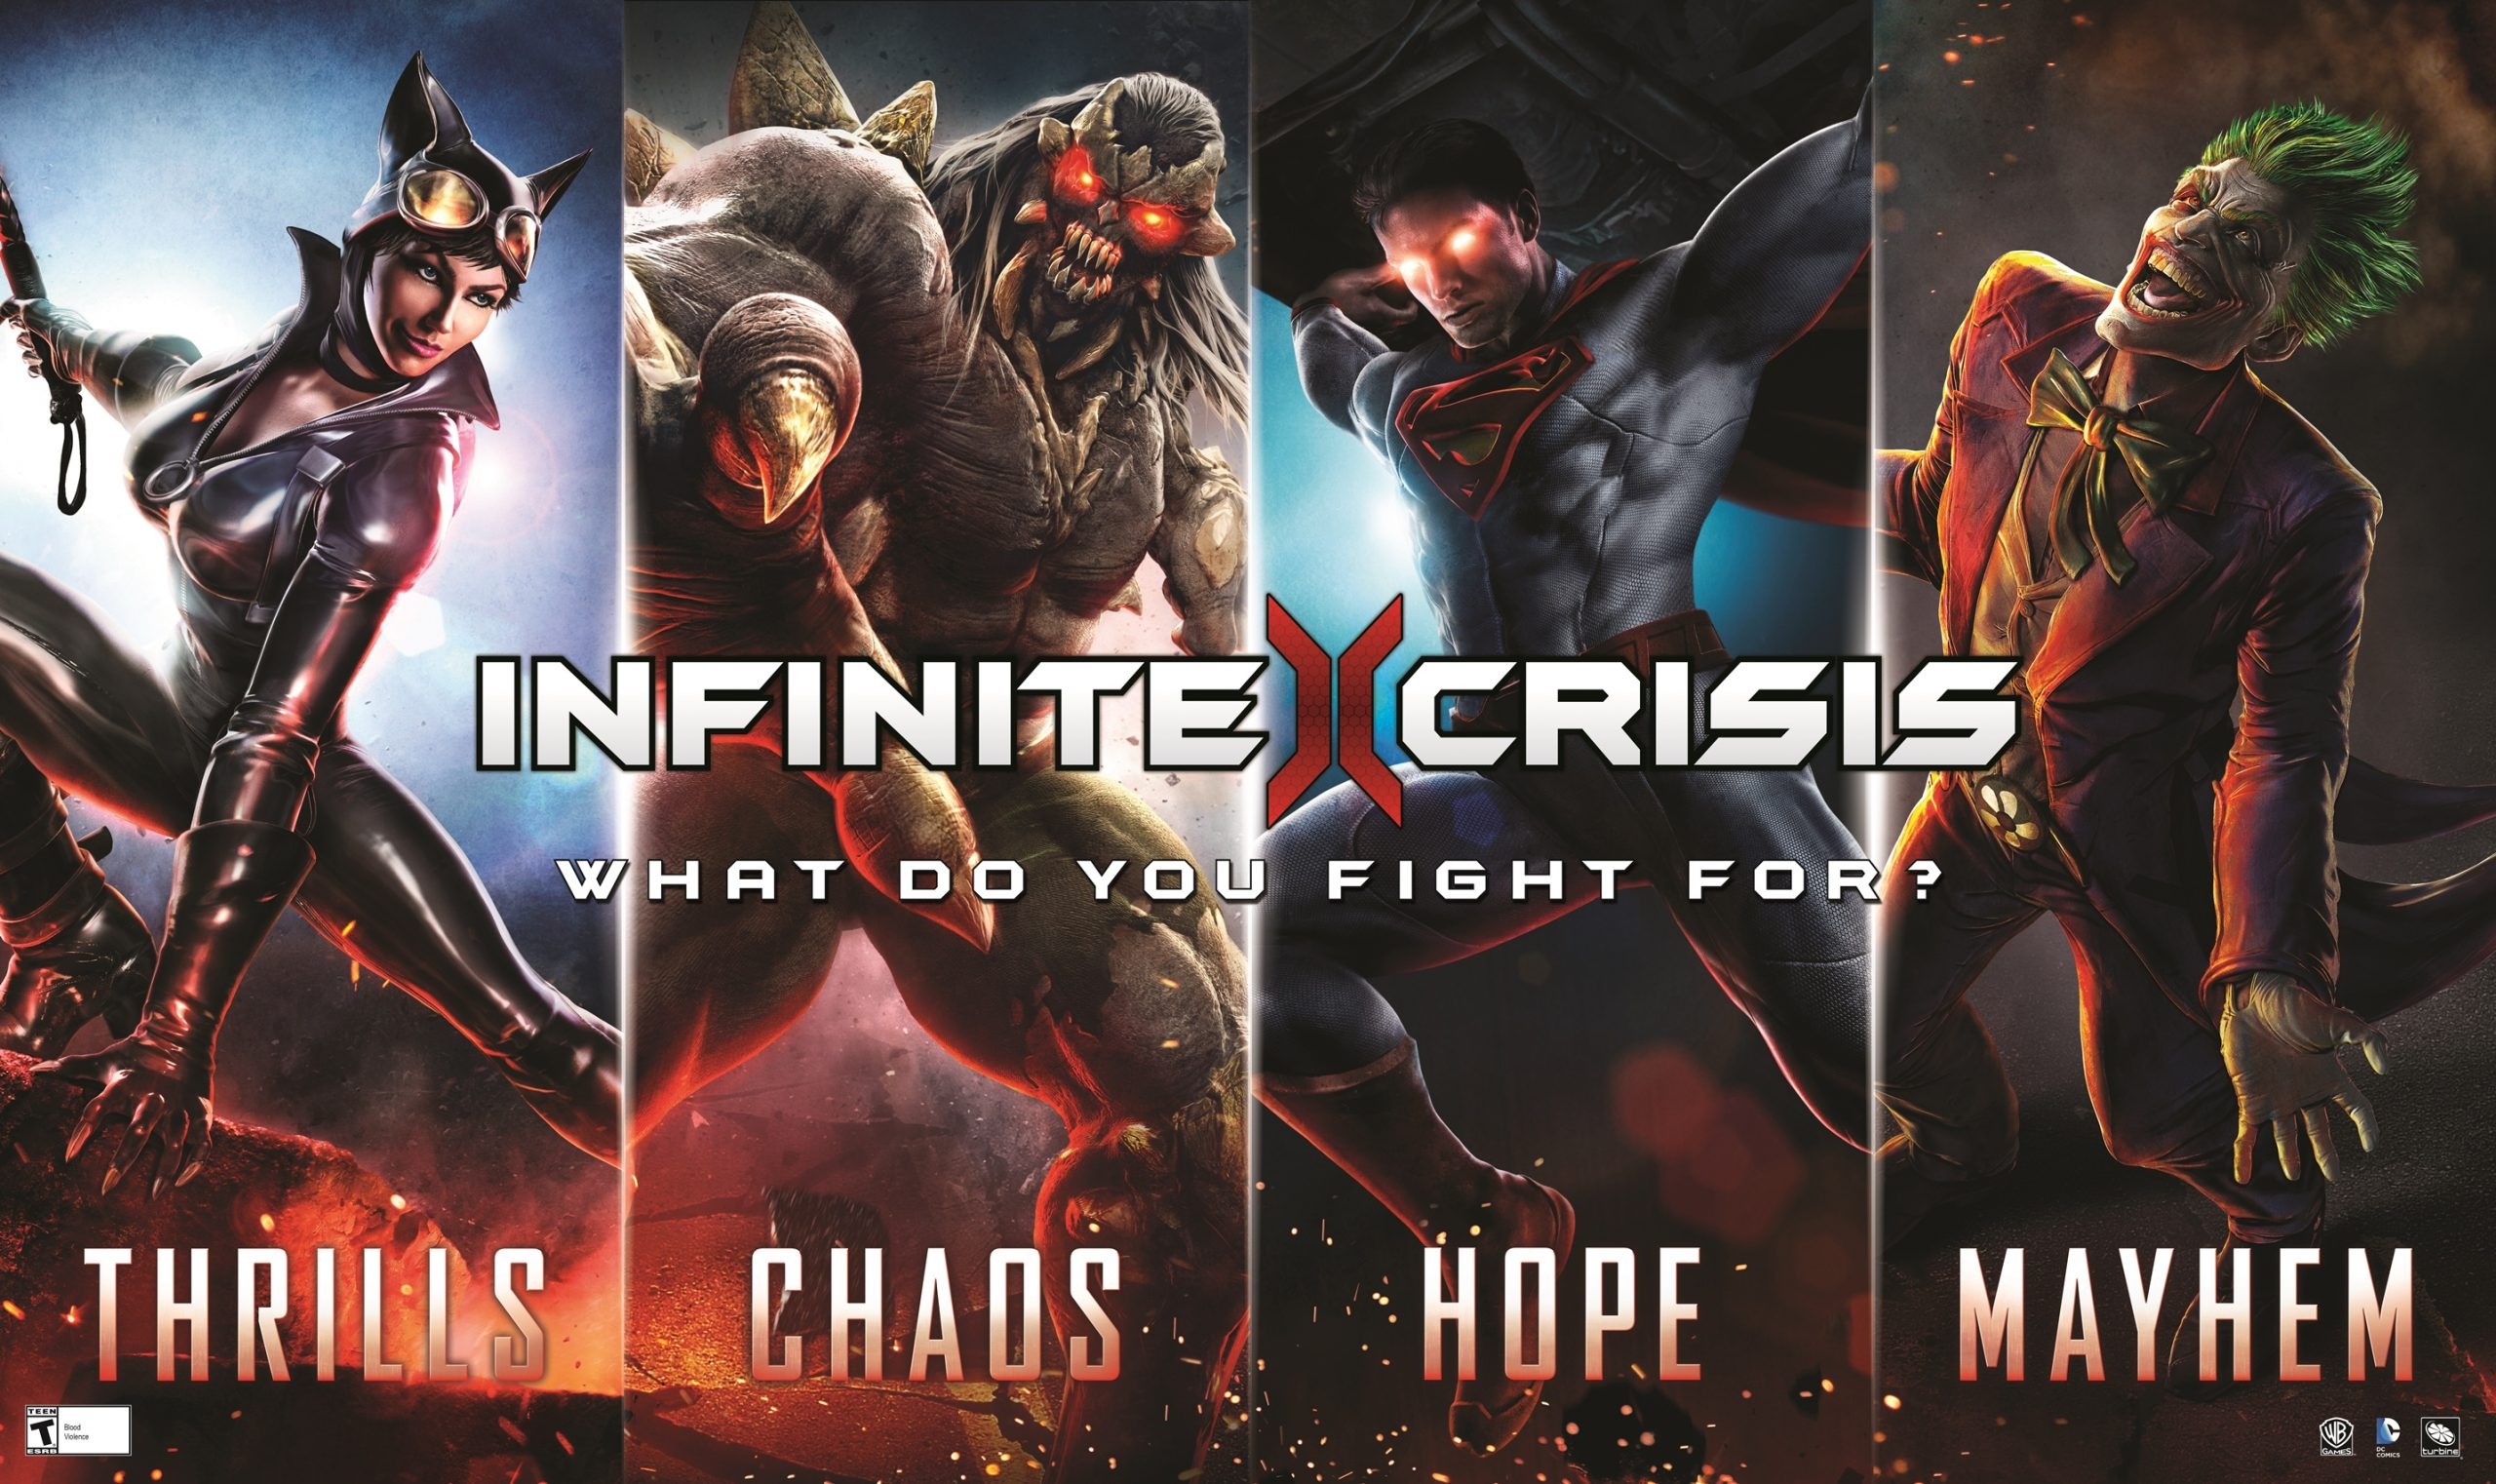 Infinite-Crisis-What-do-you-fight-for1.jpg